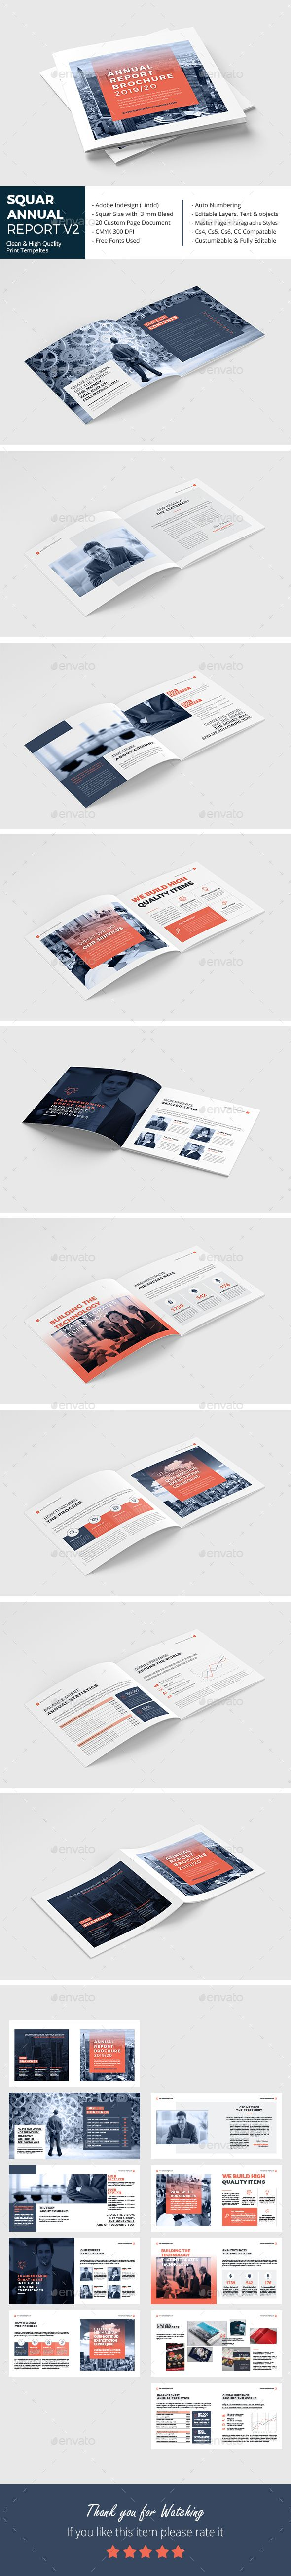 Square Annual Report Brochure Template InDesign INDD #annualreports